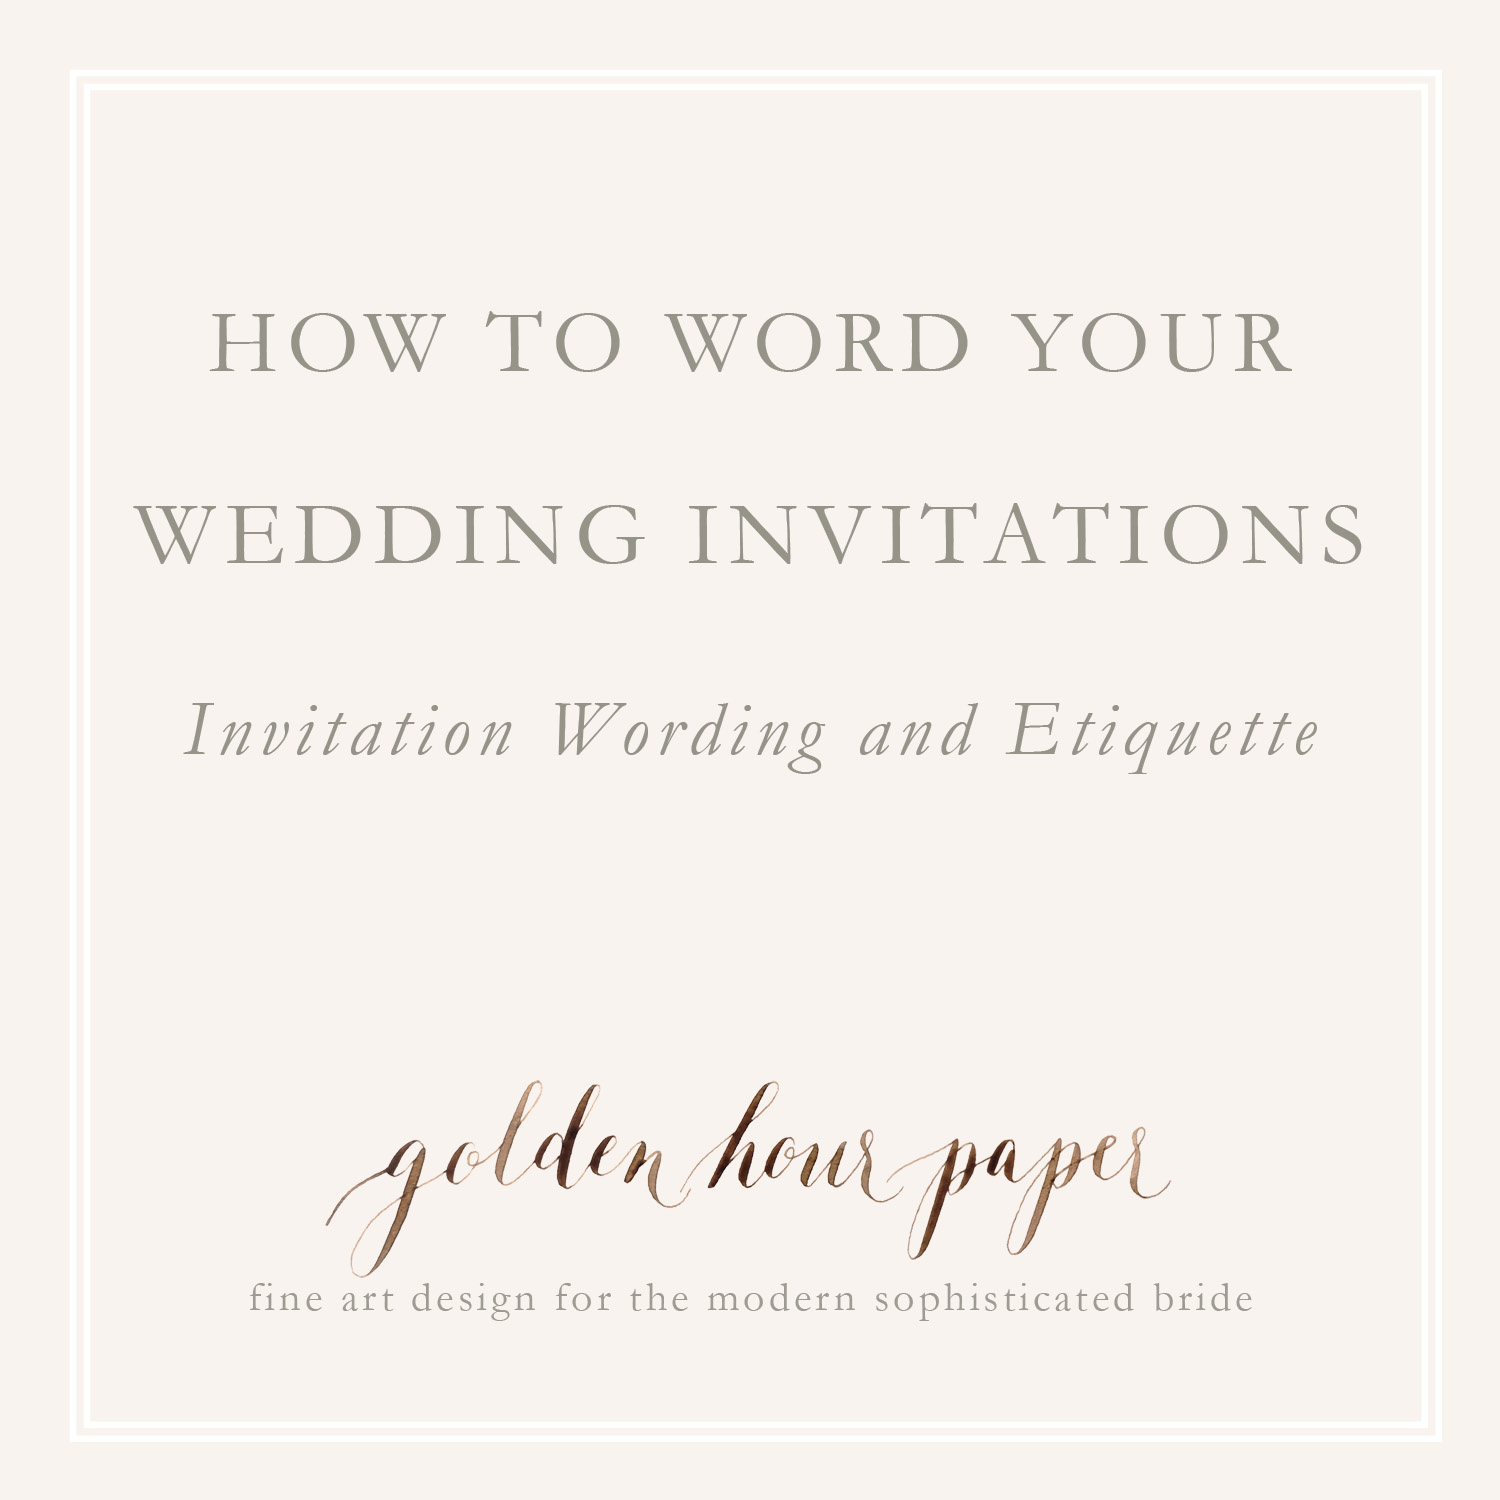 How To Word Your Wedding Invitations Invitation Wording And Etiquette